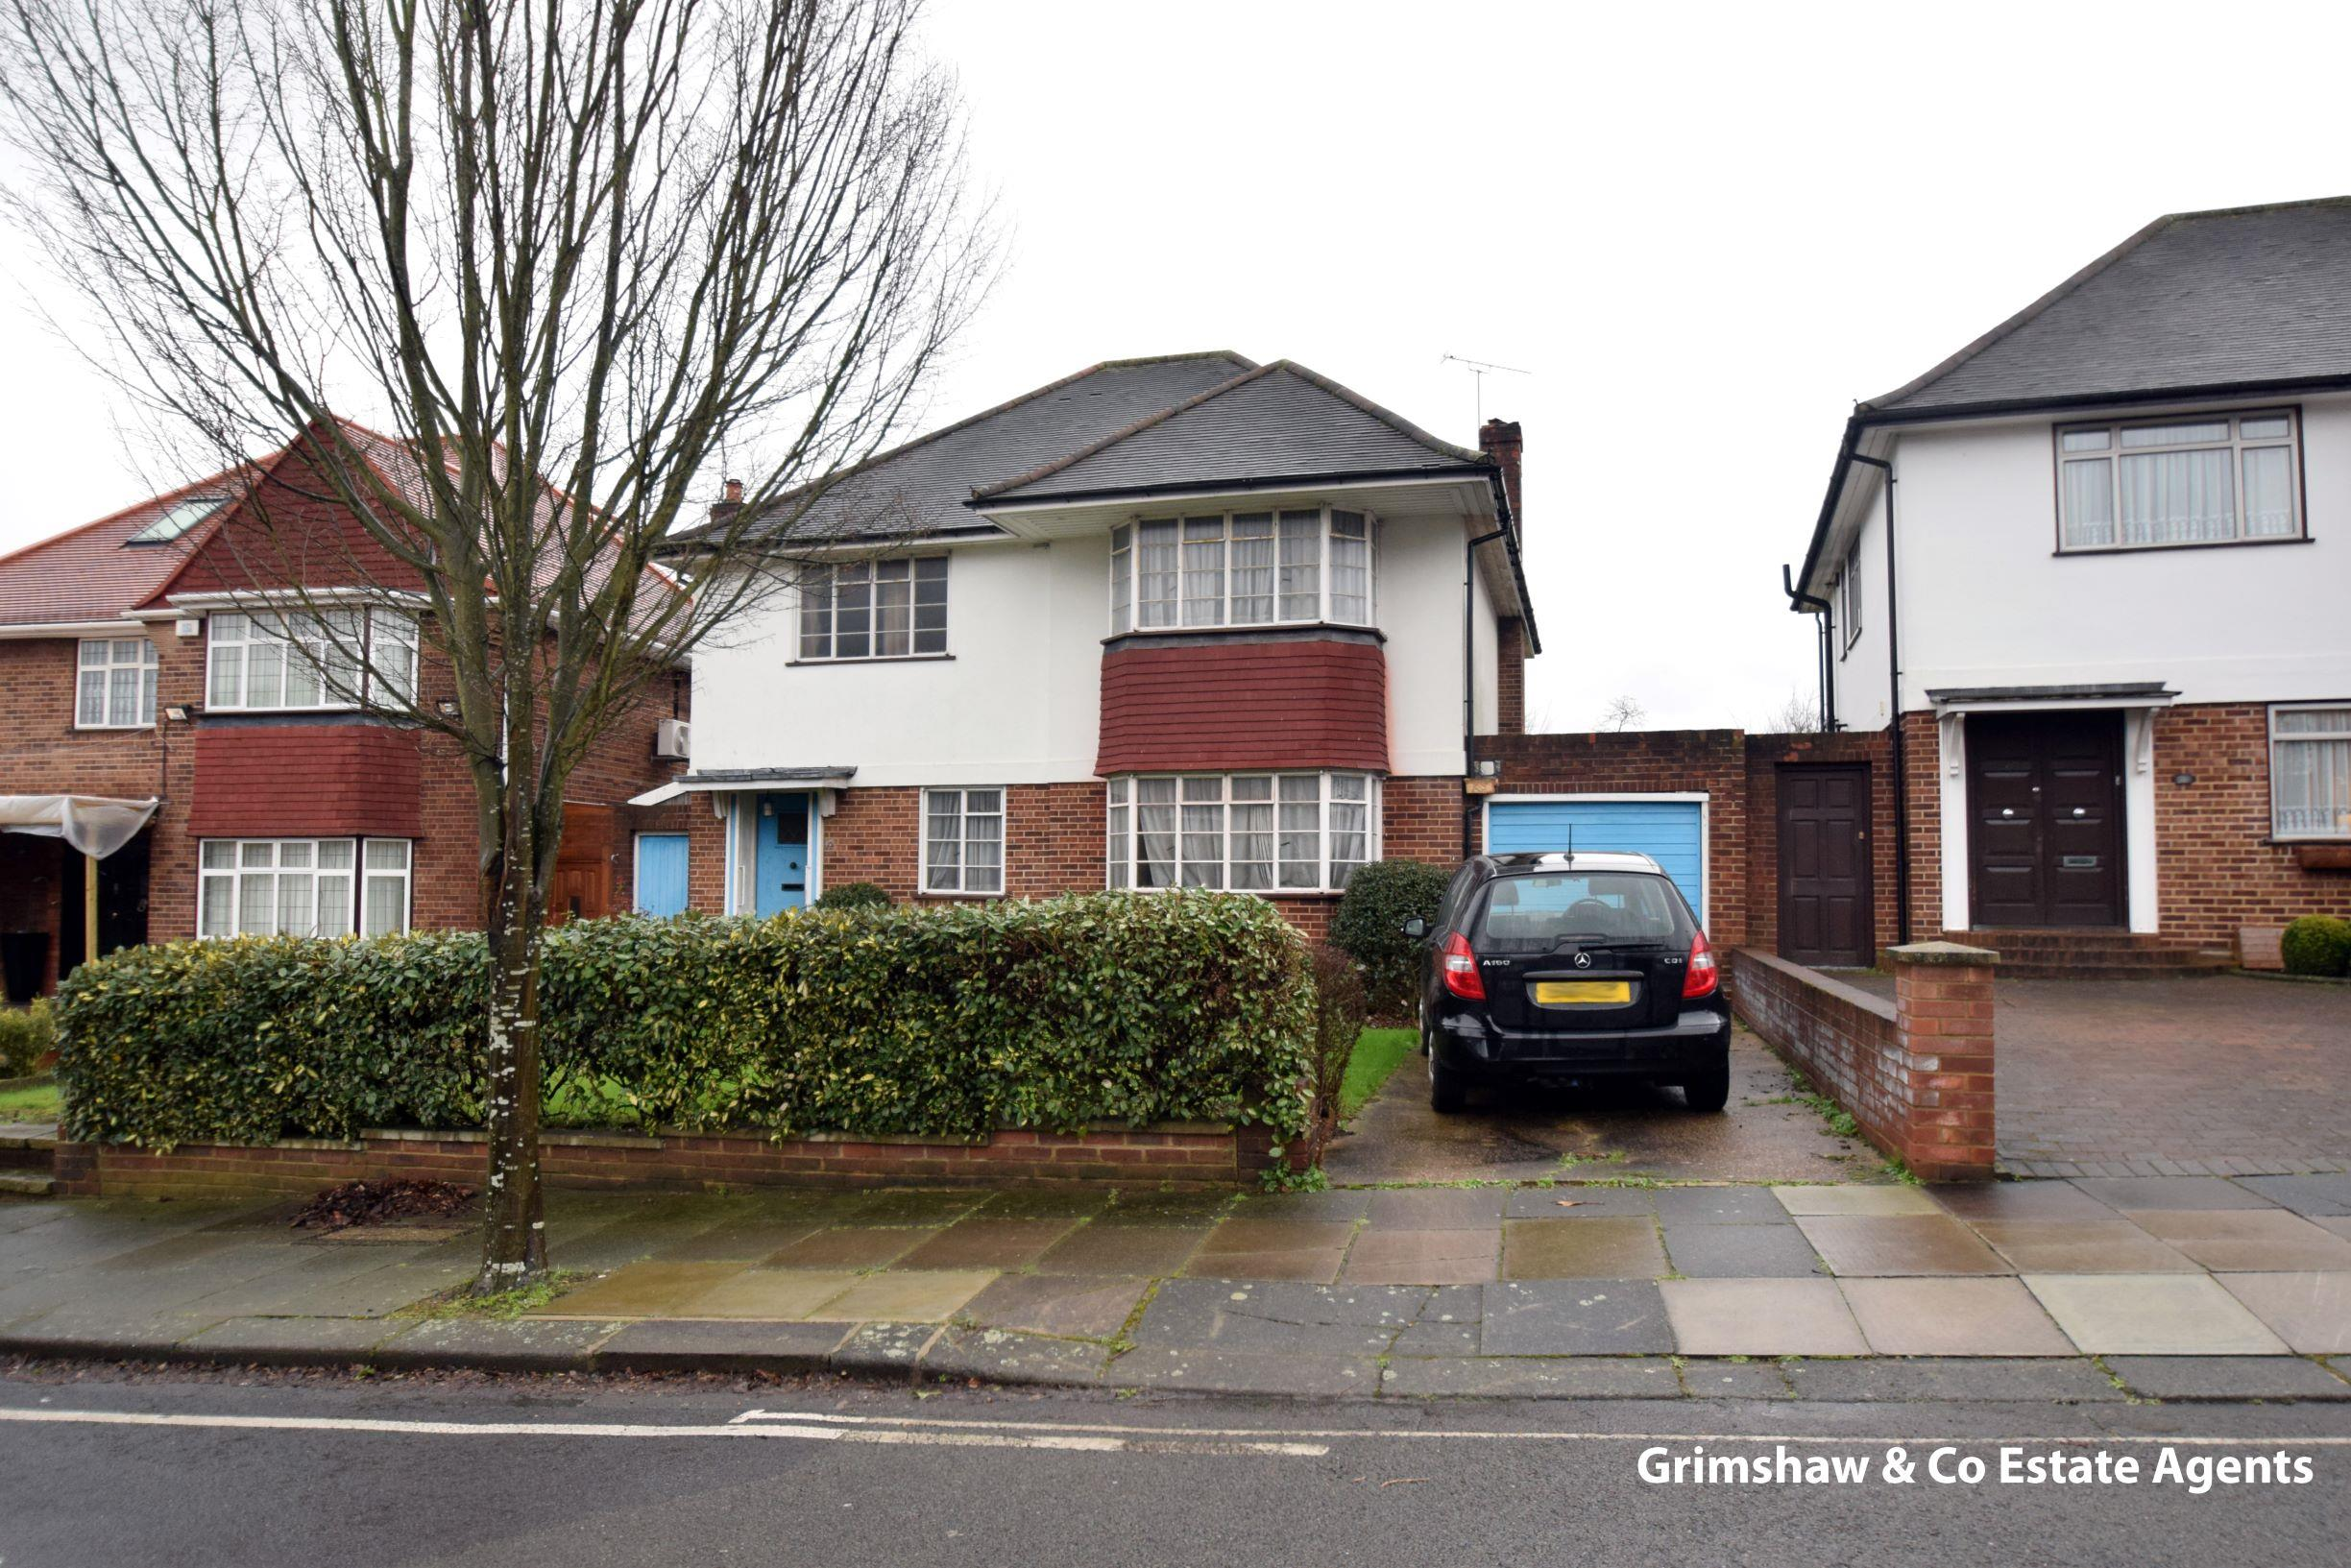 Sold - Haymills Estate Ealing W5